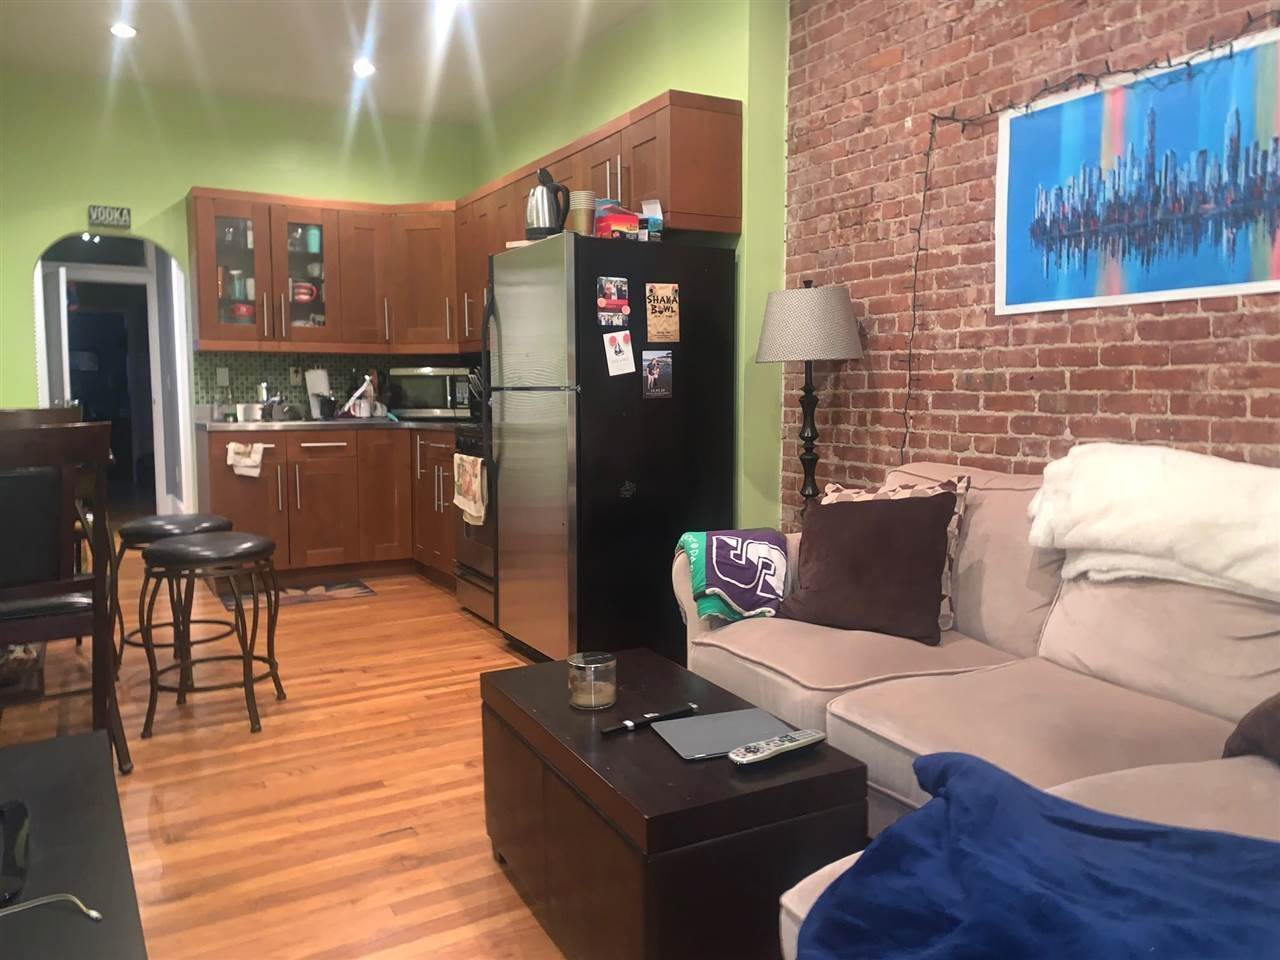 2. Residential for Rent at 816 Willow Avenue #4r Hoboken, New Jersey 07030 United States